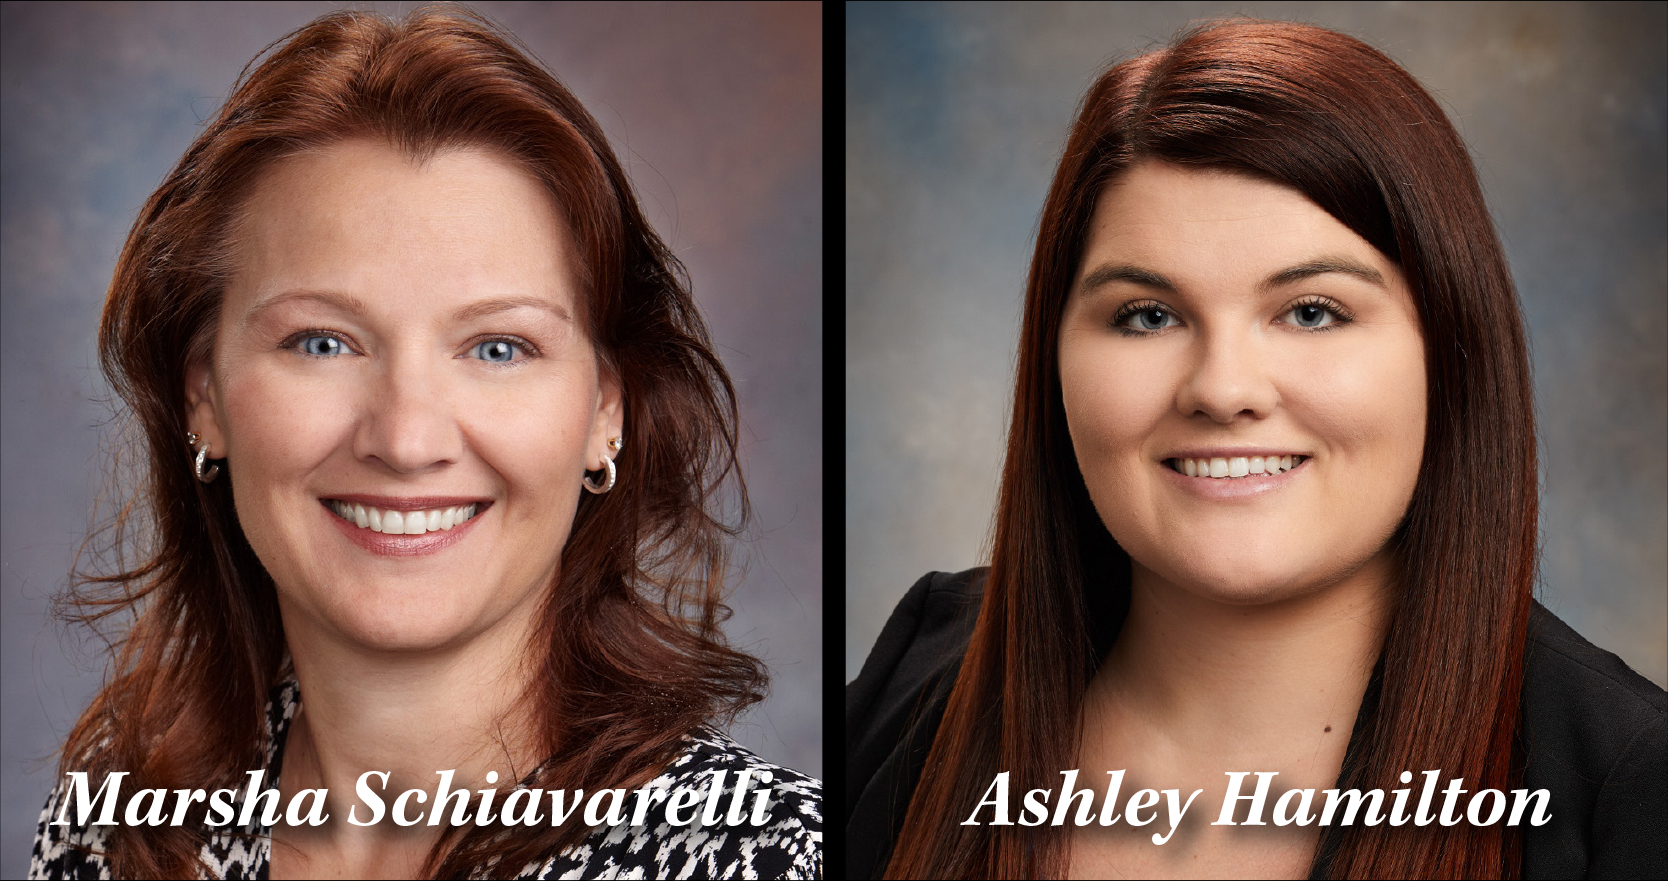 Headshot of Marsha Schiavarelli and Ashley Hamilton